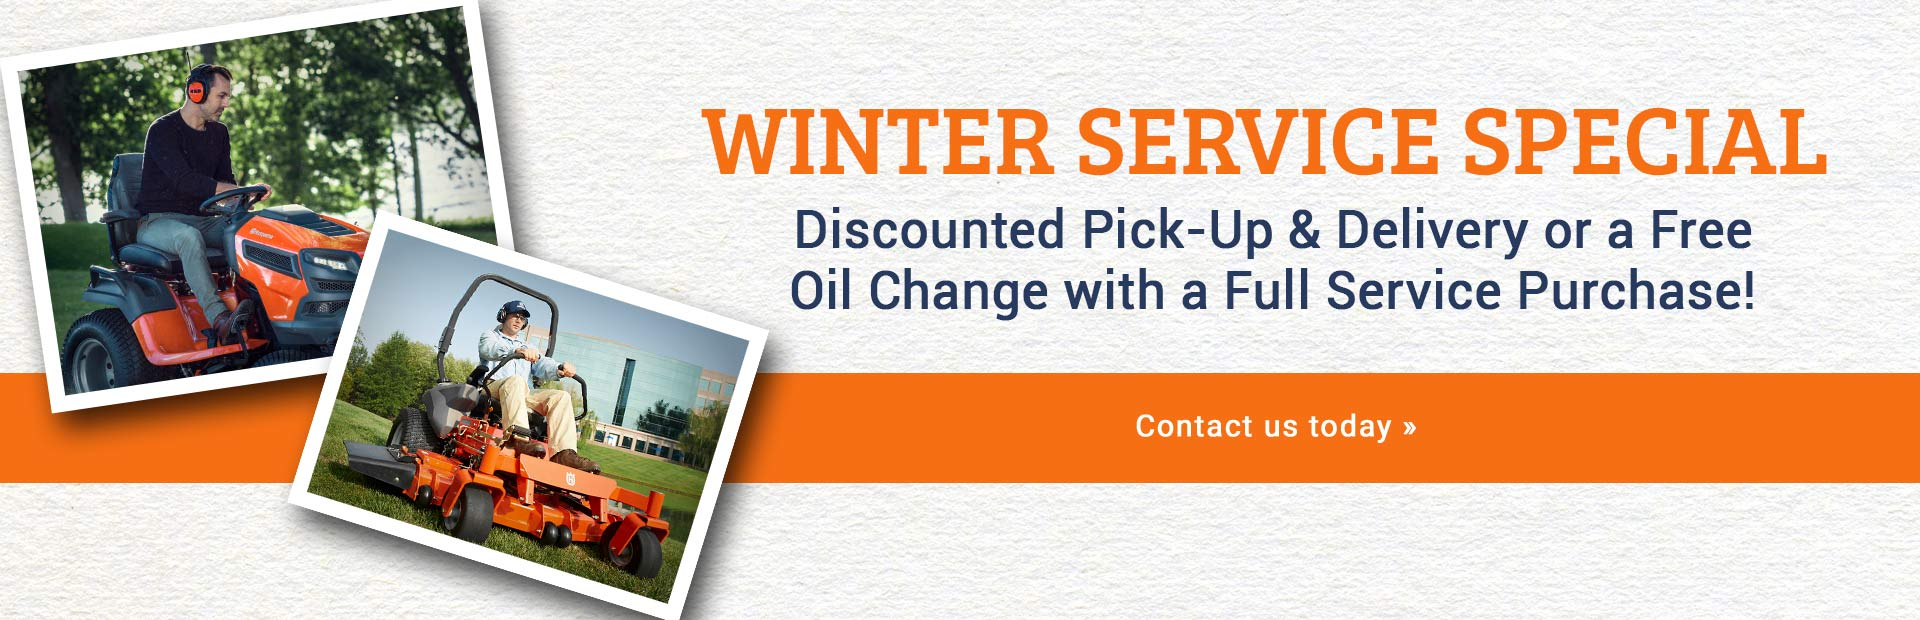 Winter Service Special: Discounted pick-up & delivery or free oil change with full service purchase.